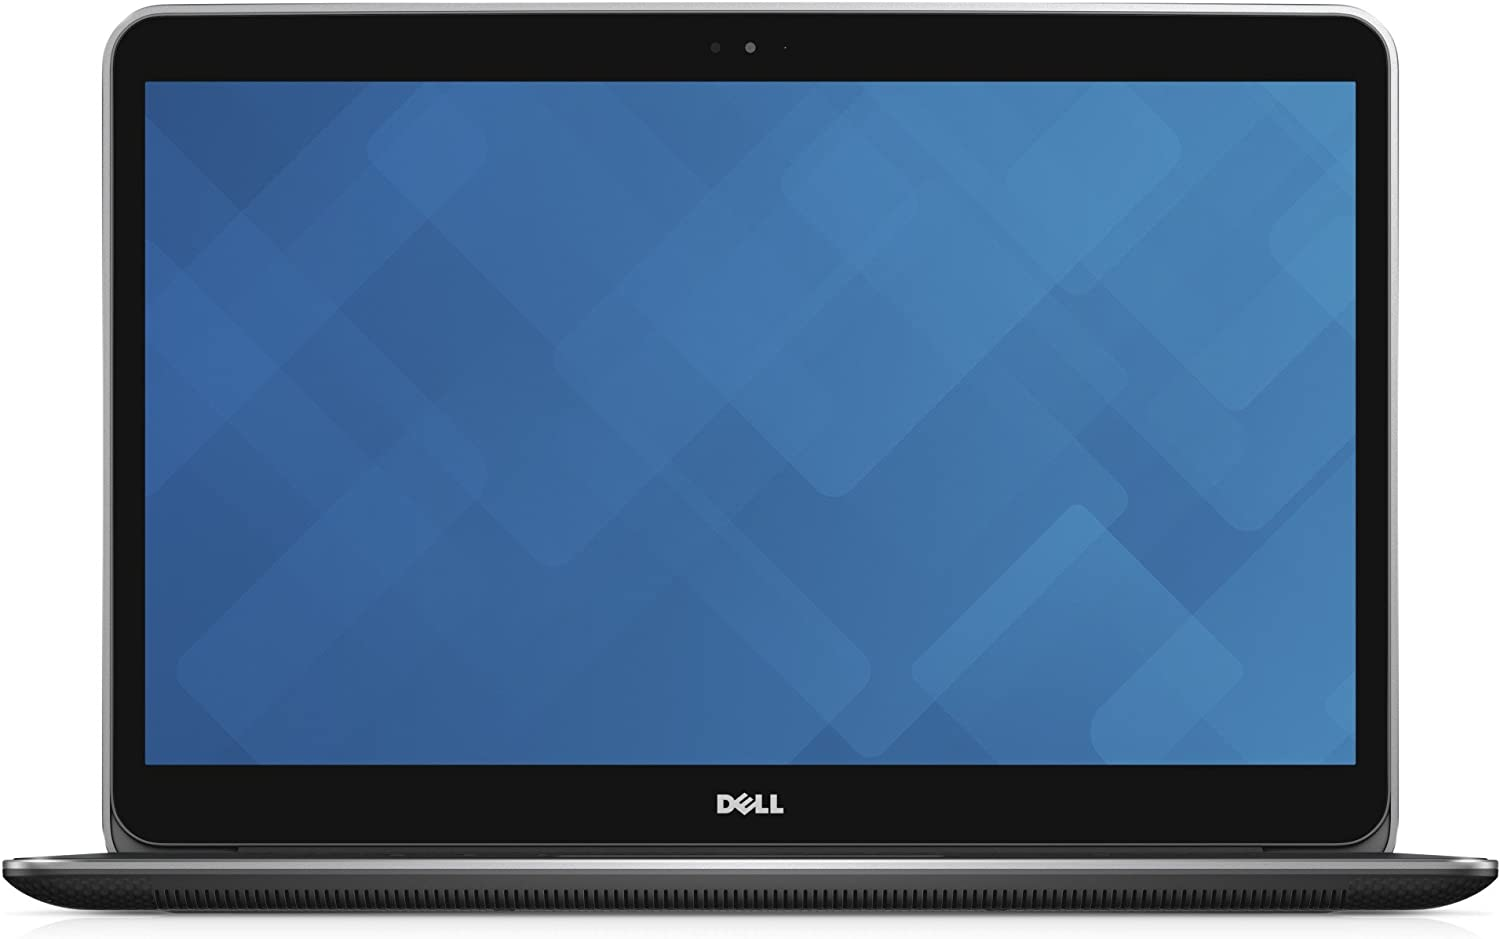 Dell XPS 15 9530 15.6-Inch Laptop (2.3 GHz Intel Core i7-4712HQ Processor, 16 GB RAM, 512 GB SSD, Windows 8.1)